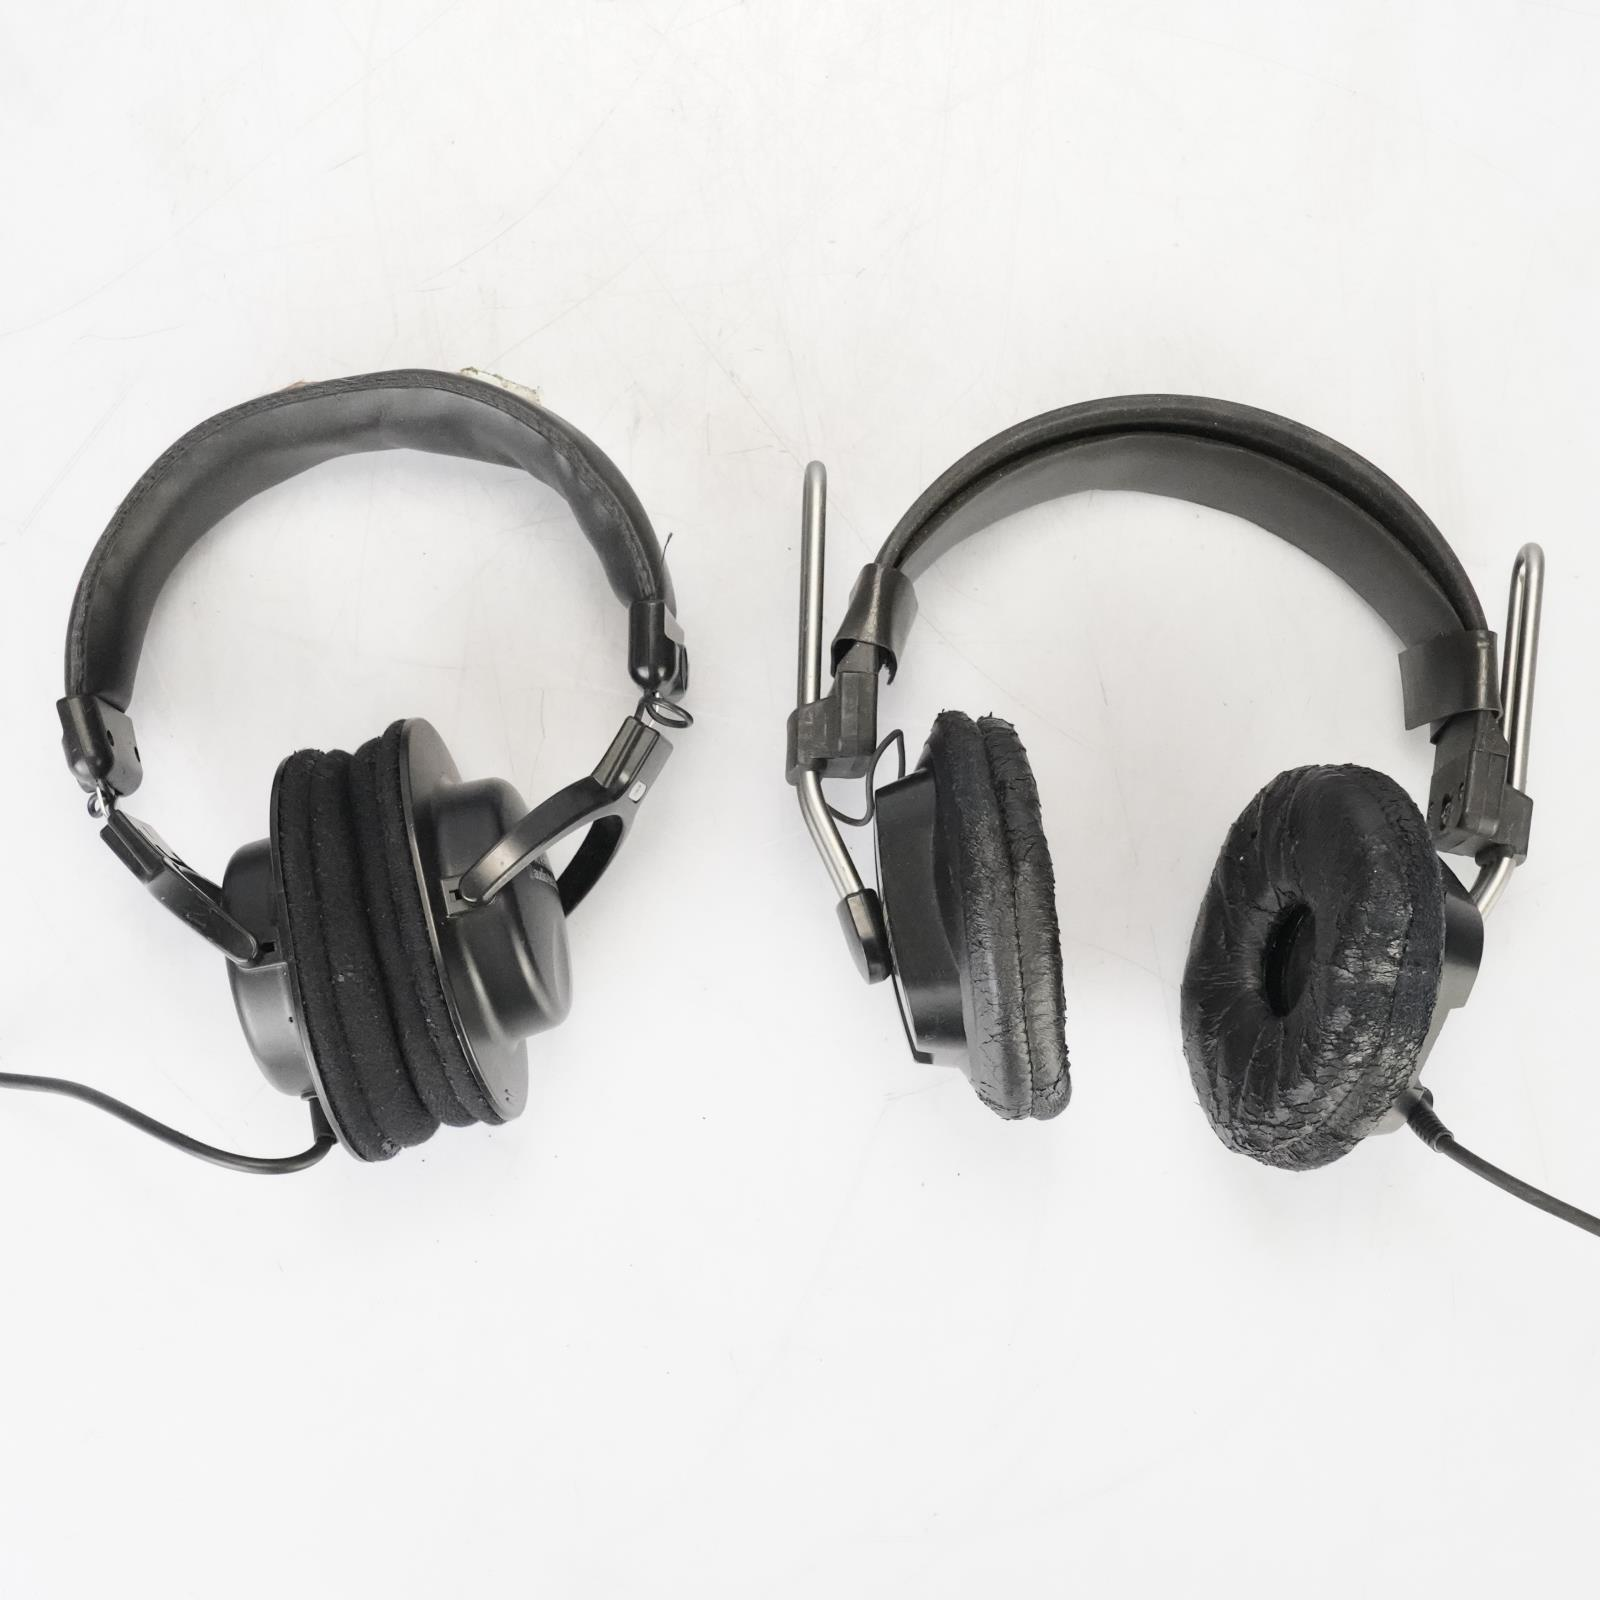 Fostex T20 & Audio-Technica ATH-M30 Headphones Cans owned by Ed Cherney #39116